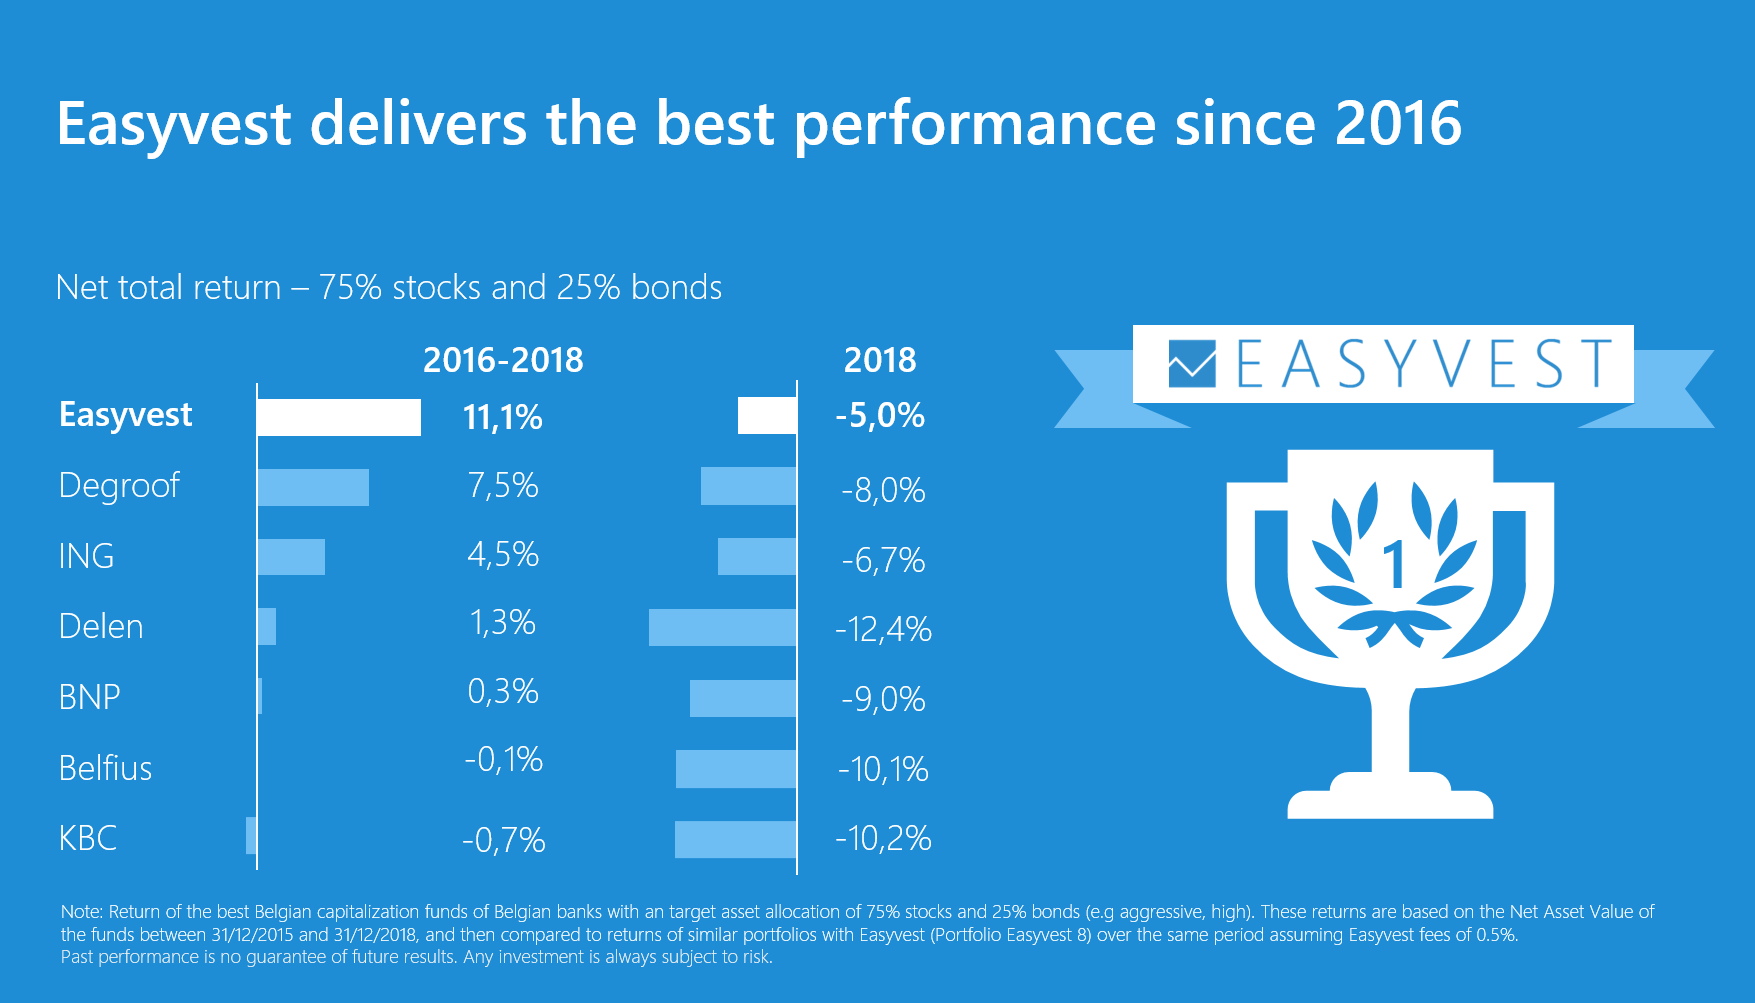 Easyvest delivers the best performance since 2016